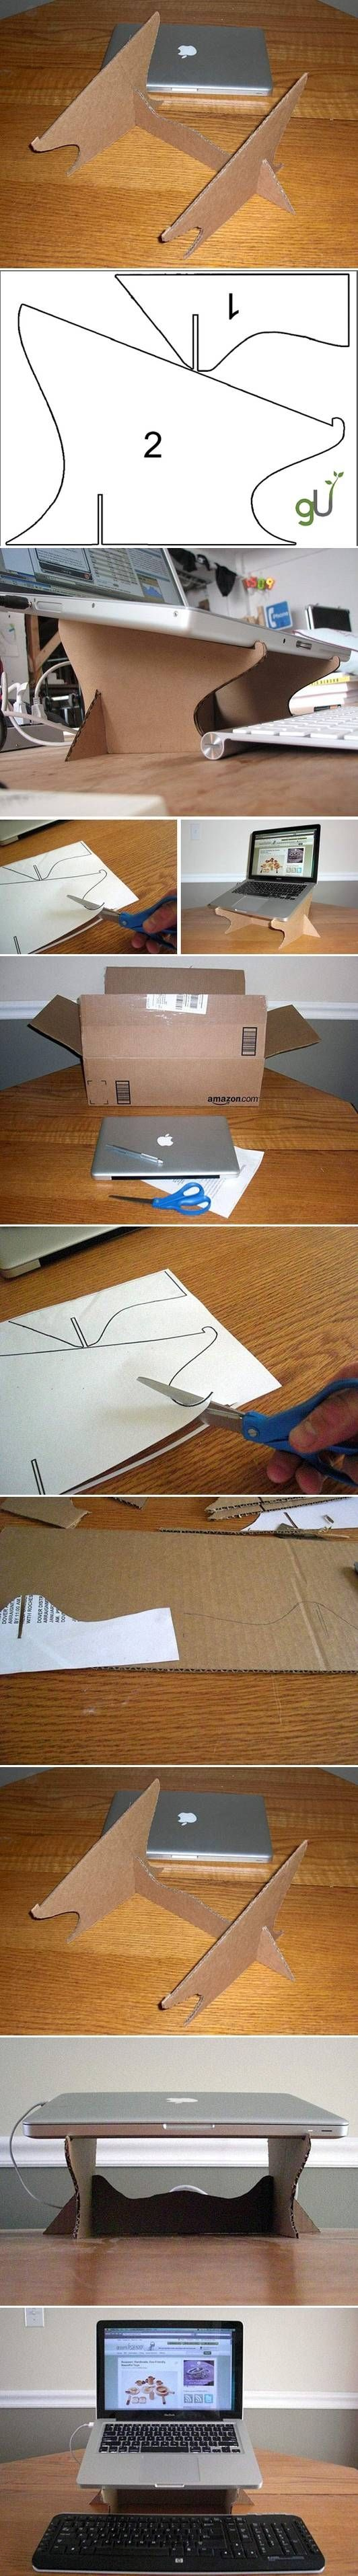 DIY Simple Cardboard Laptop Stand diy. easy crafts diy ideas